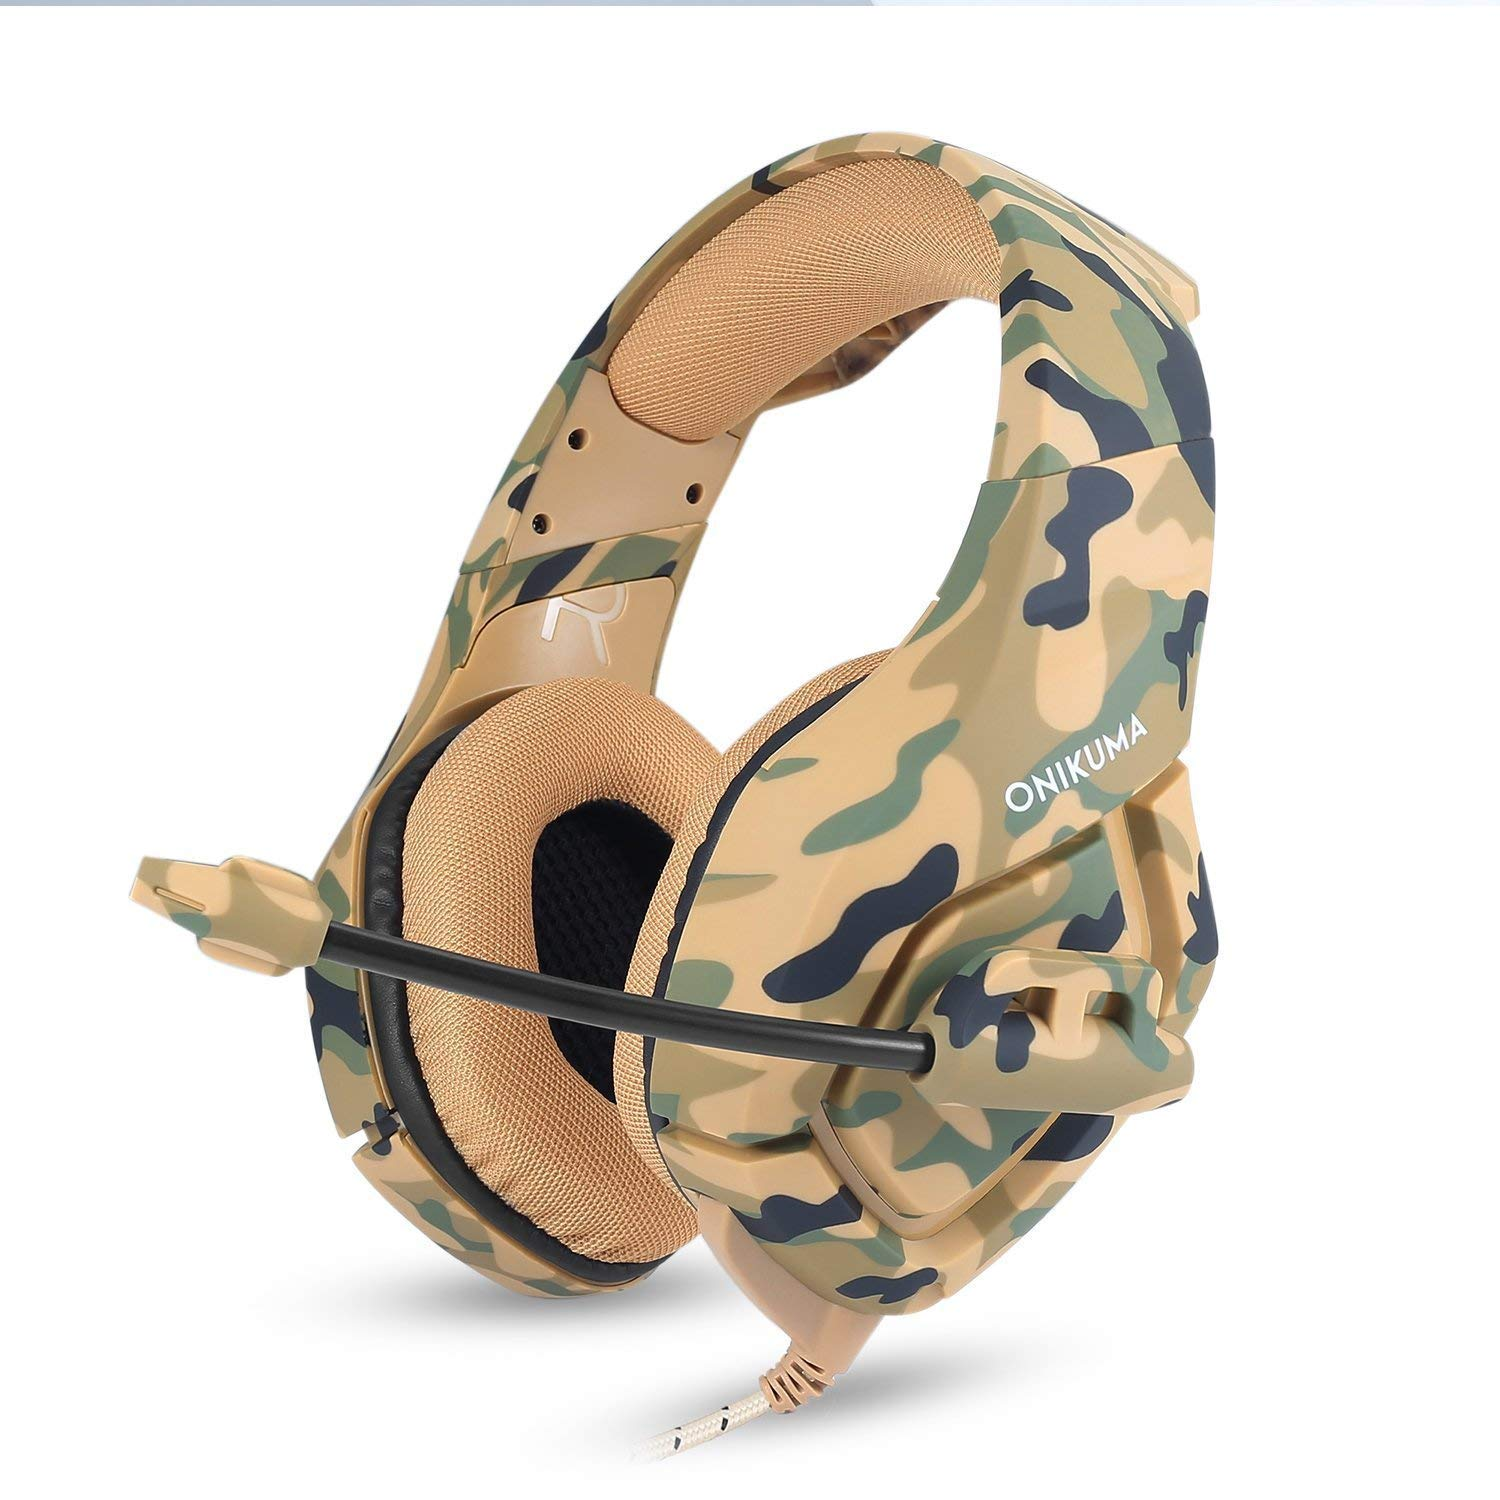 Stereo Gaming Headset for PC, PS4, Xbox One, Playstation Games, Noise Cancelling Over Ear Headphones for Laptop, Nintendo Switch Camouflage